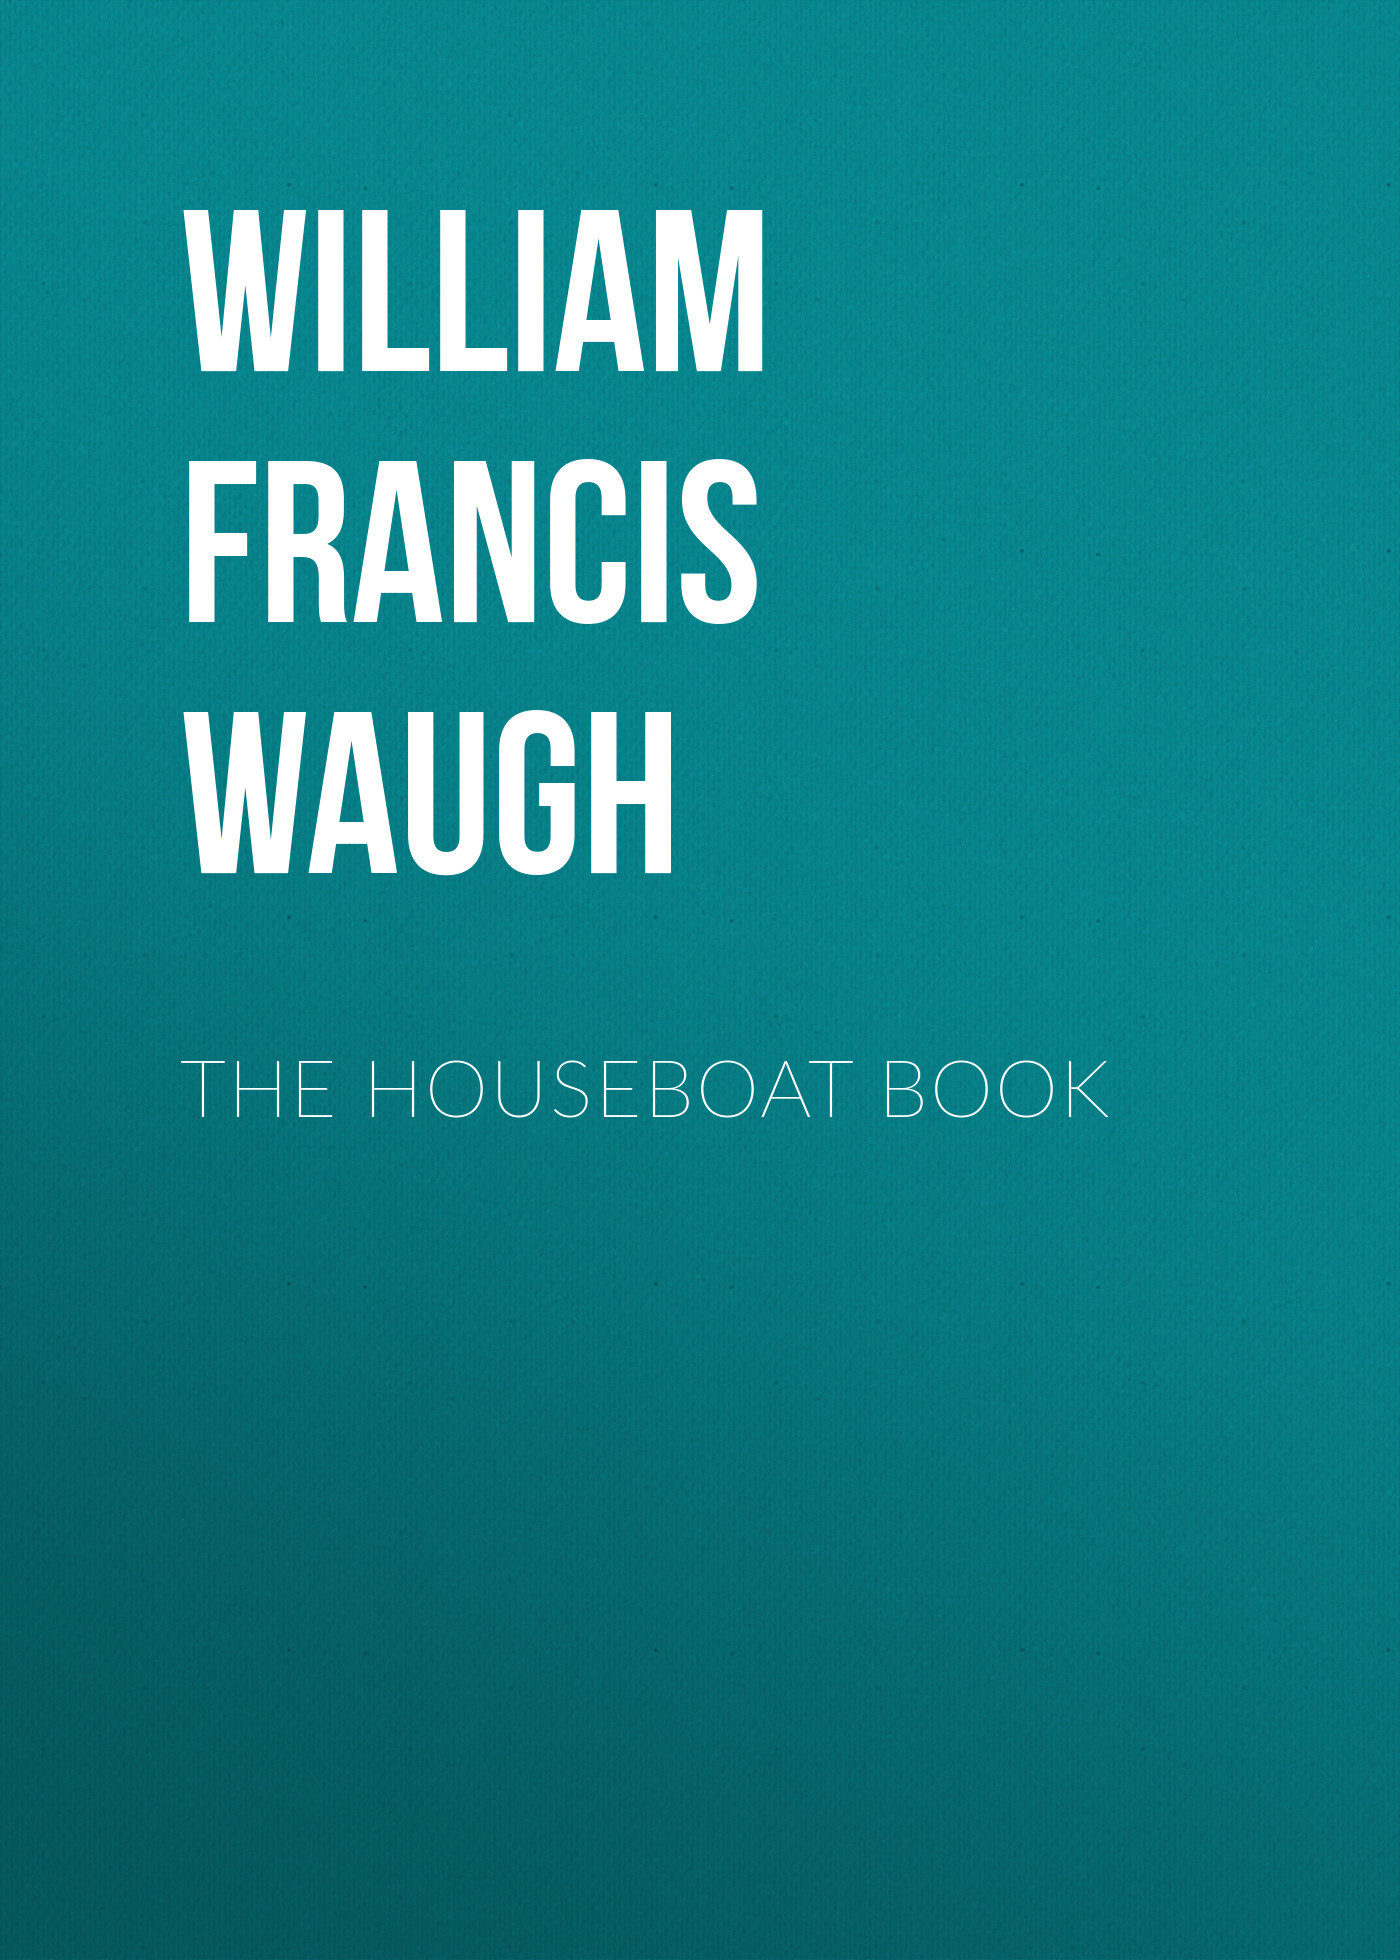 William Francis Waugh The houseboat book gasquet francis aidan the eve of the reformation